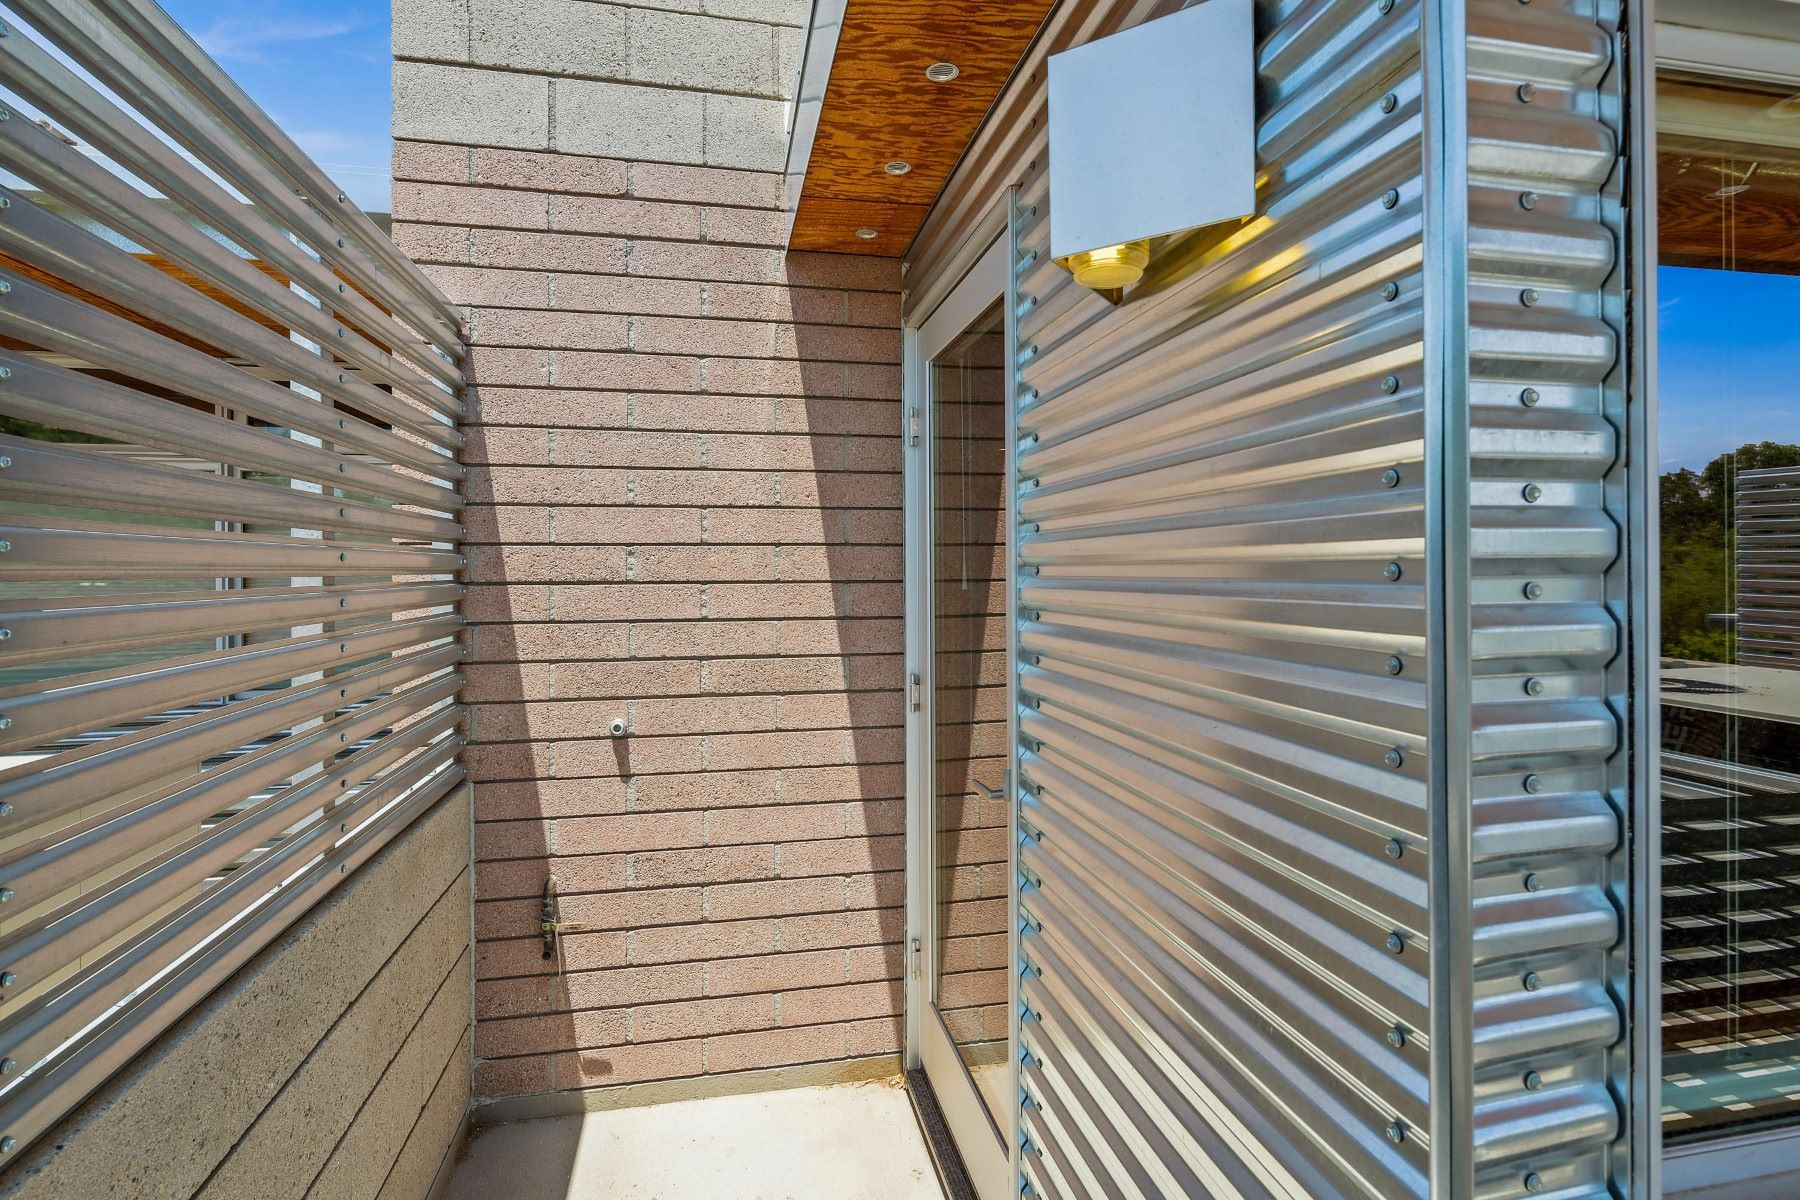 Additional photo for property listing at Sienna Court Lofts 930 S Ash Ave Tempe, Arizona 85281 United States